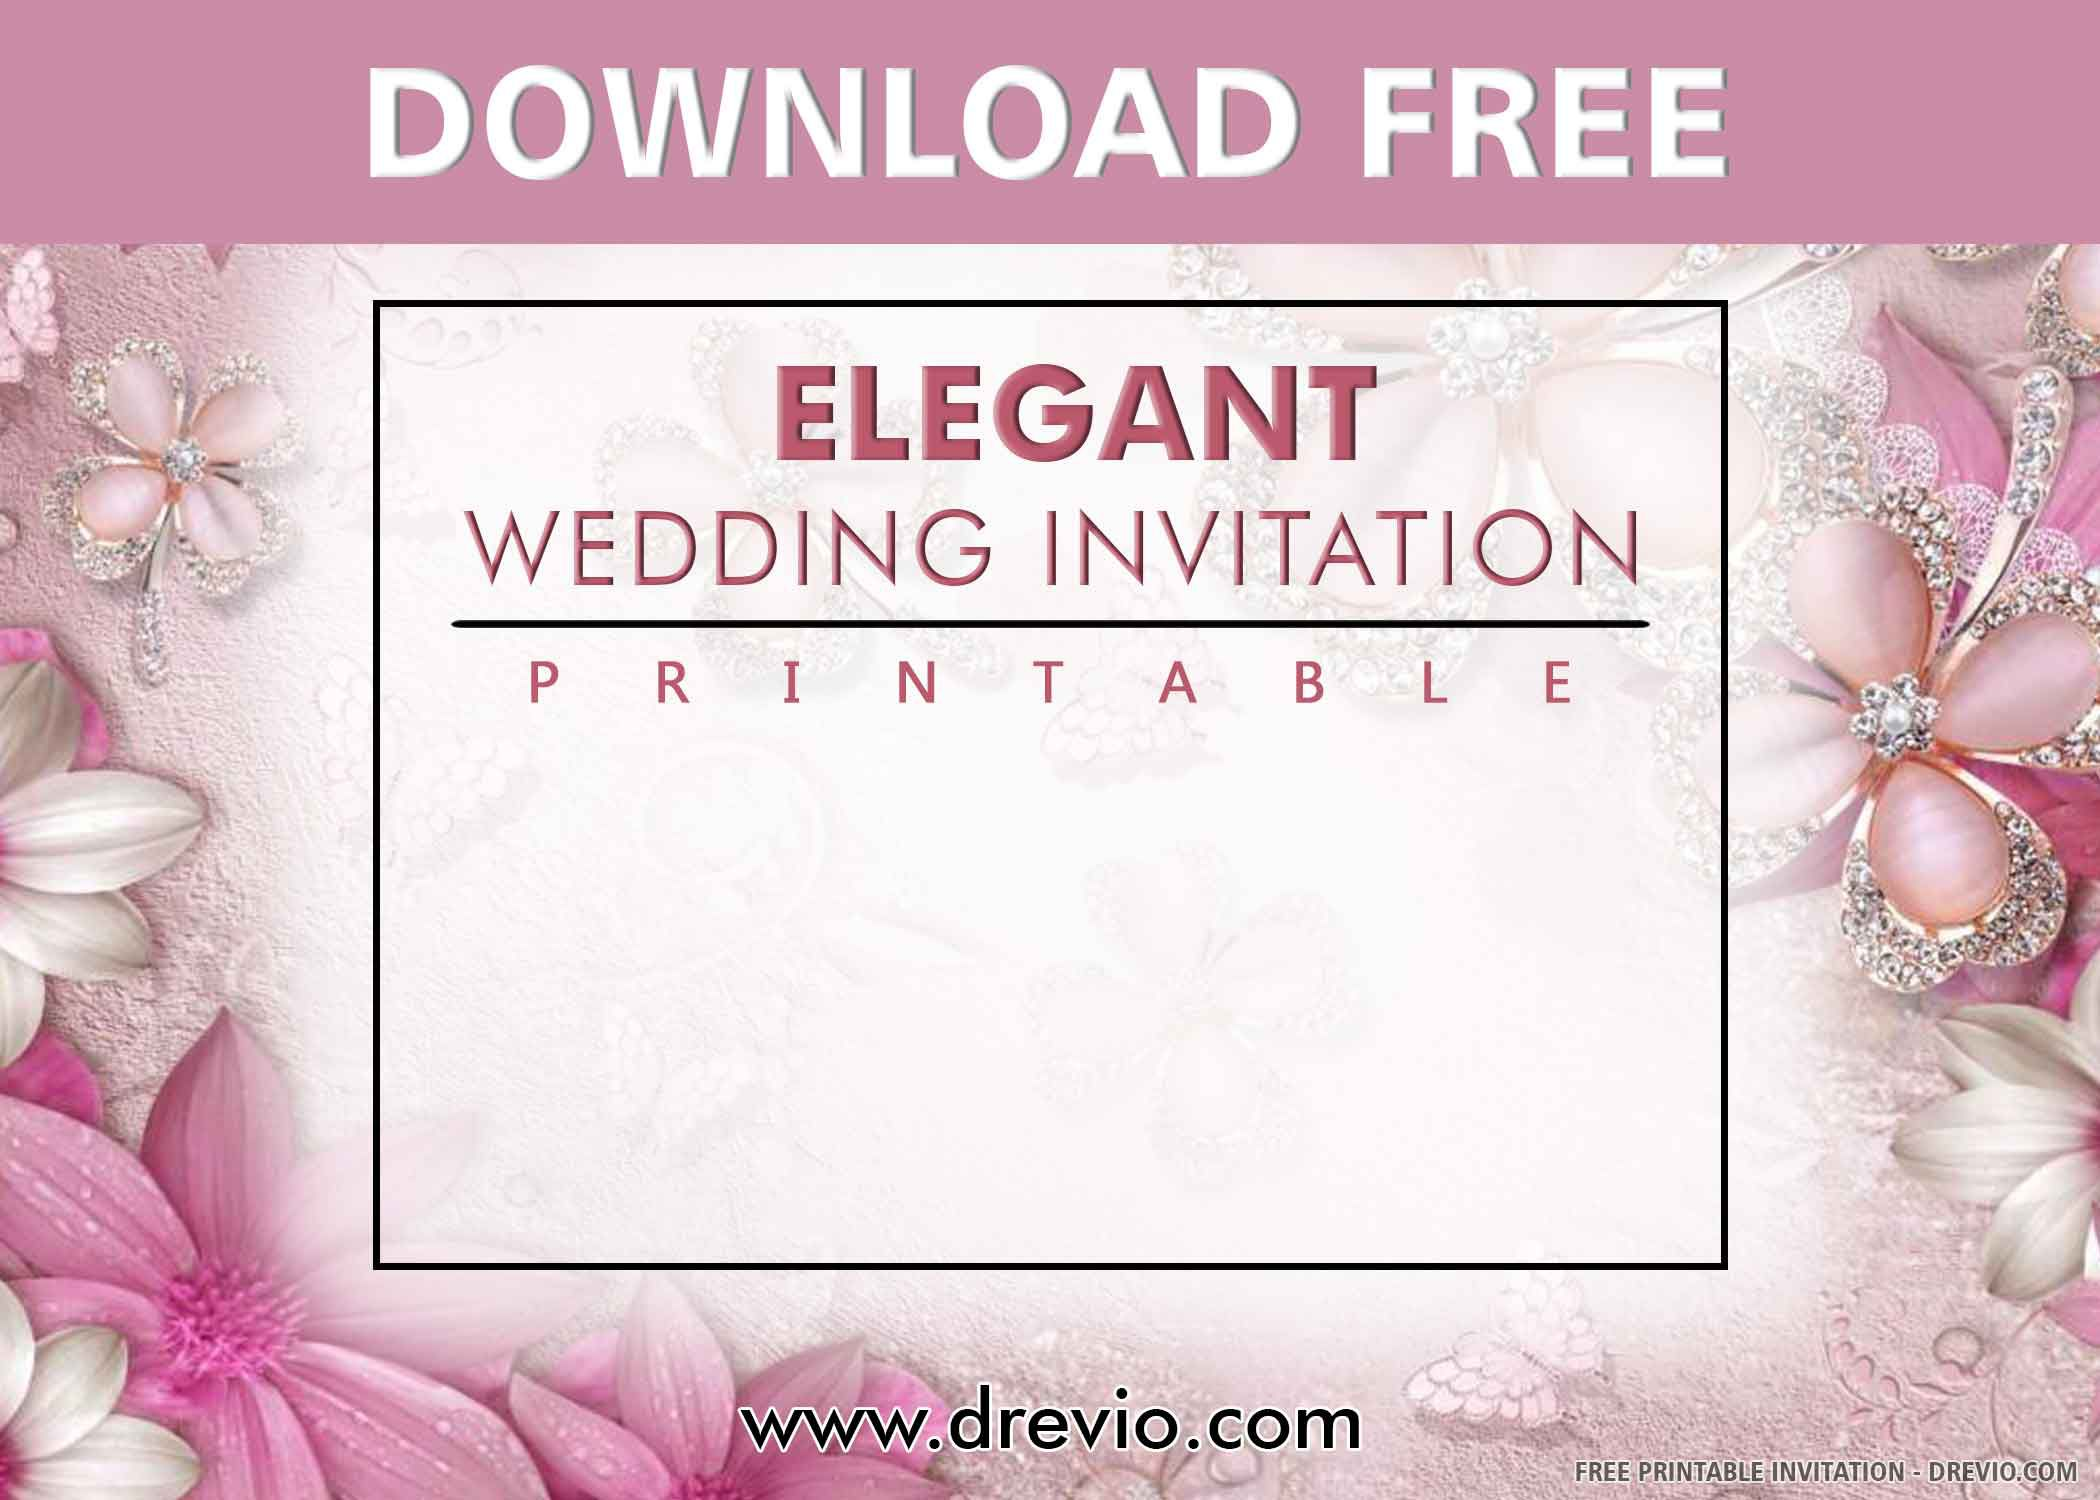 006 Remarkable Free Wedding Invitation Template Printable Highest Clarity  For Microsoft Word MacFull